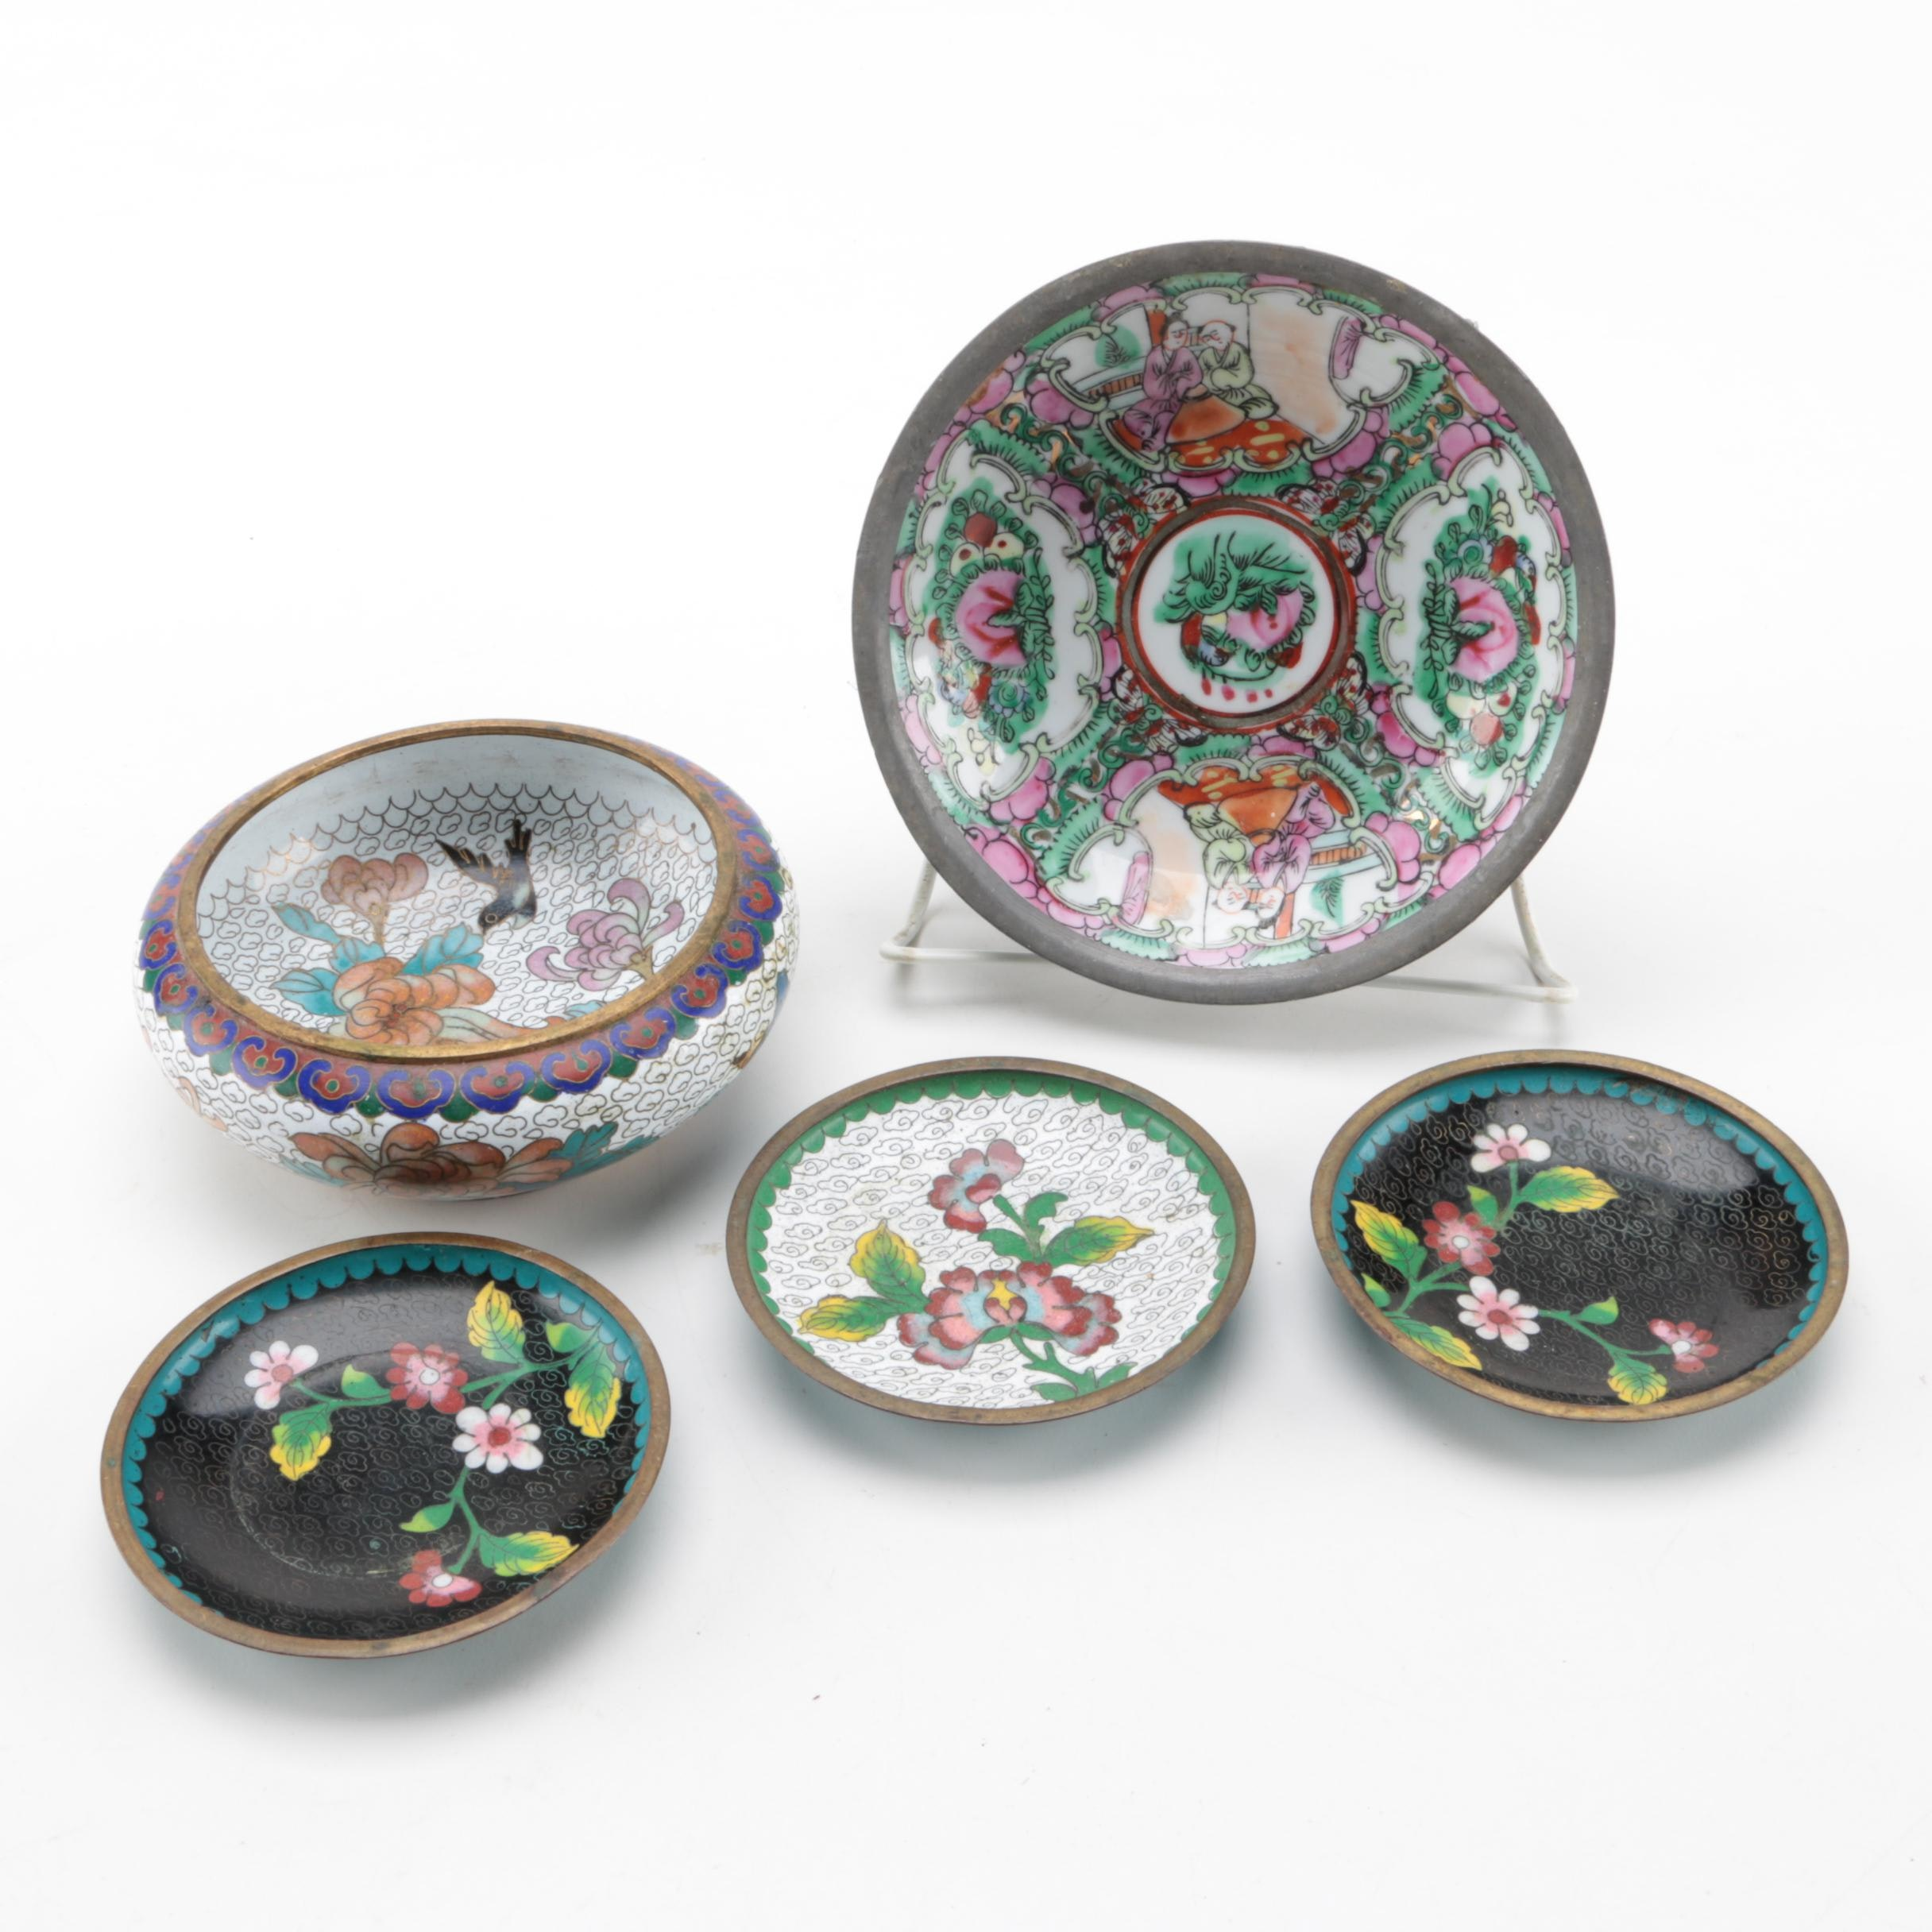 Chinese Cloisonné Dishes and Rose Canton Porcelain Bowl